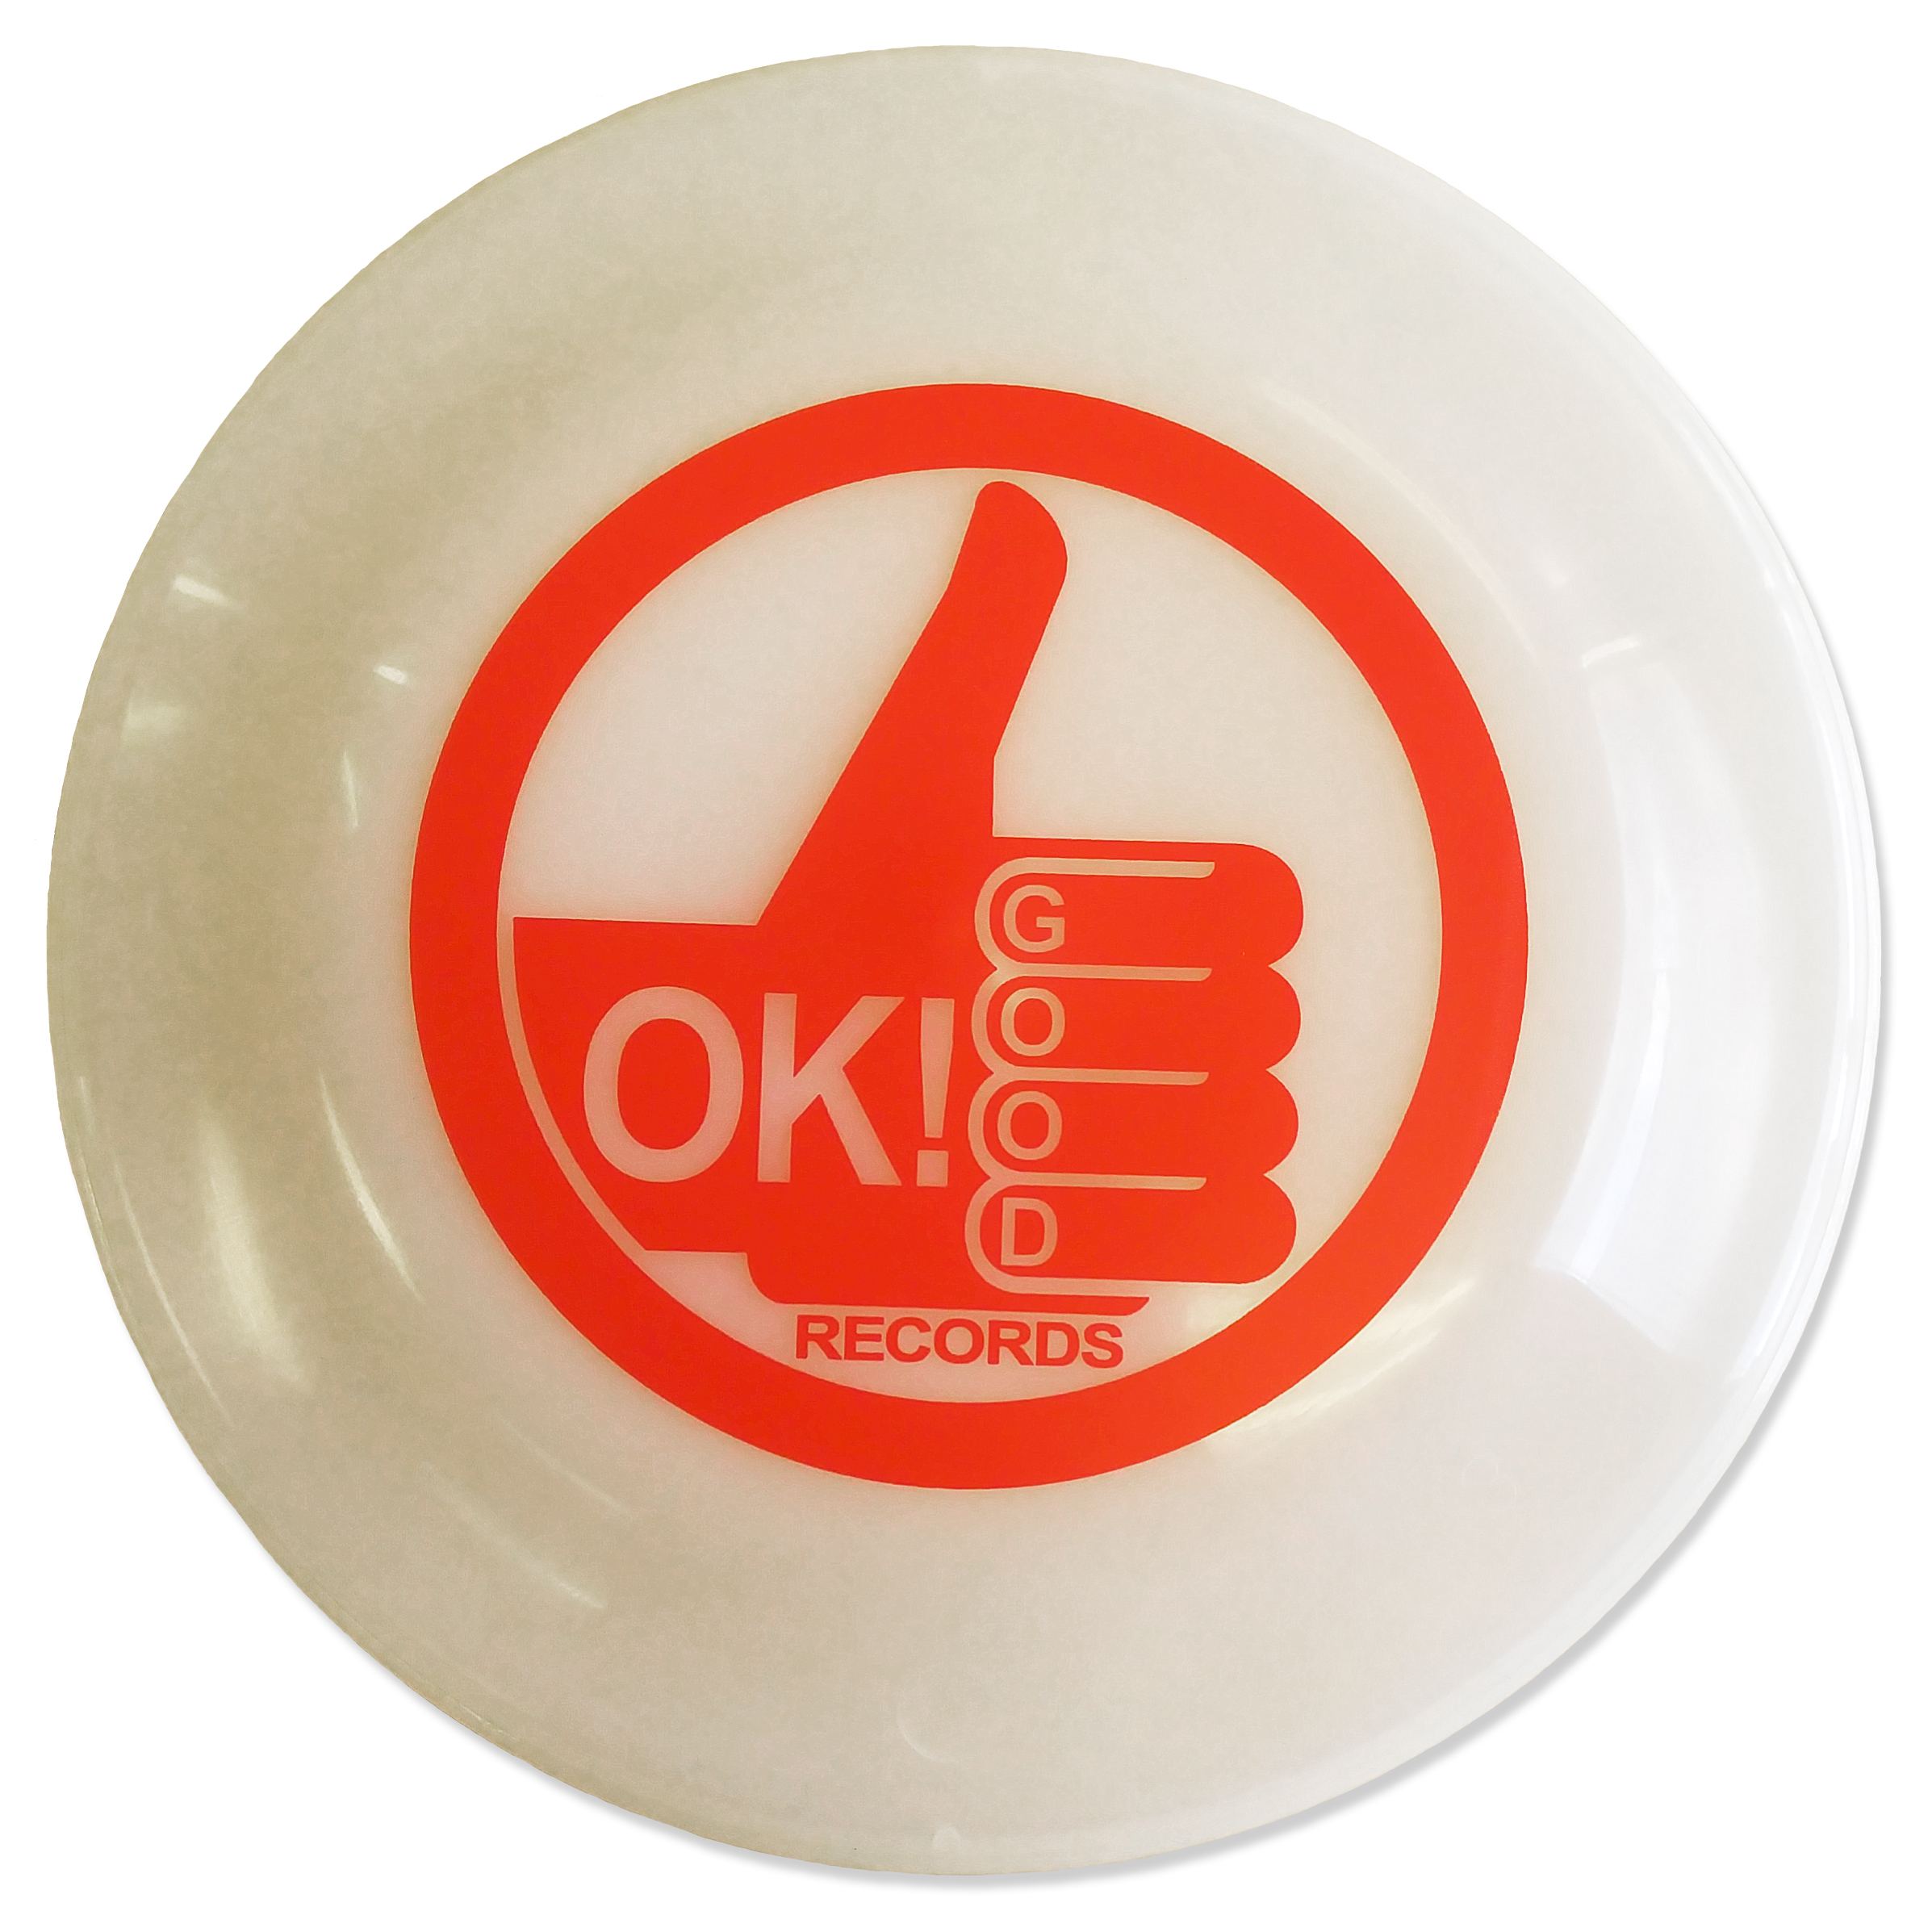 OK!Good Records Glow in the Dark Frisbee